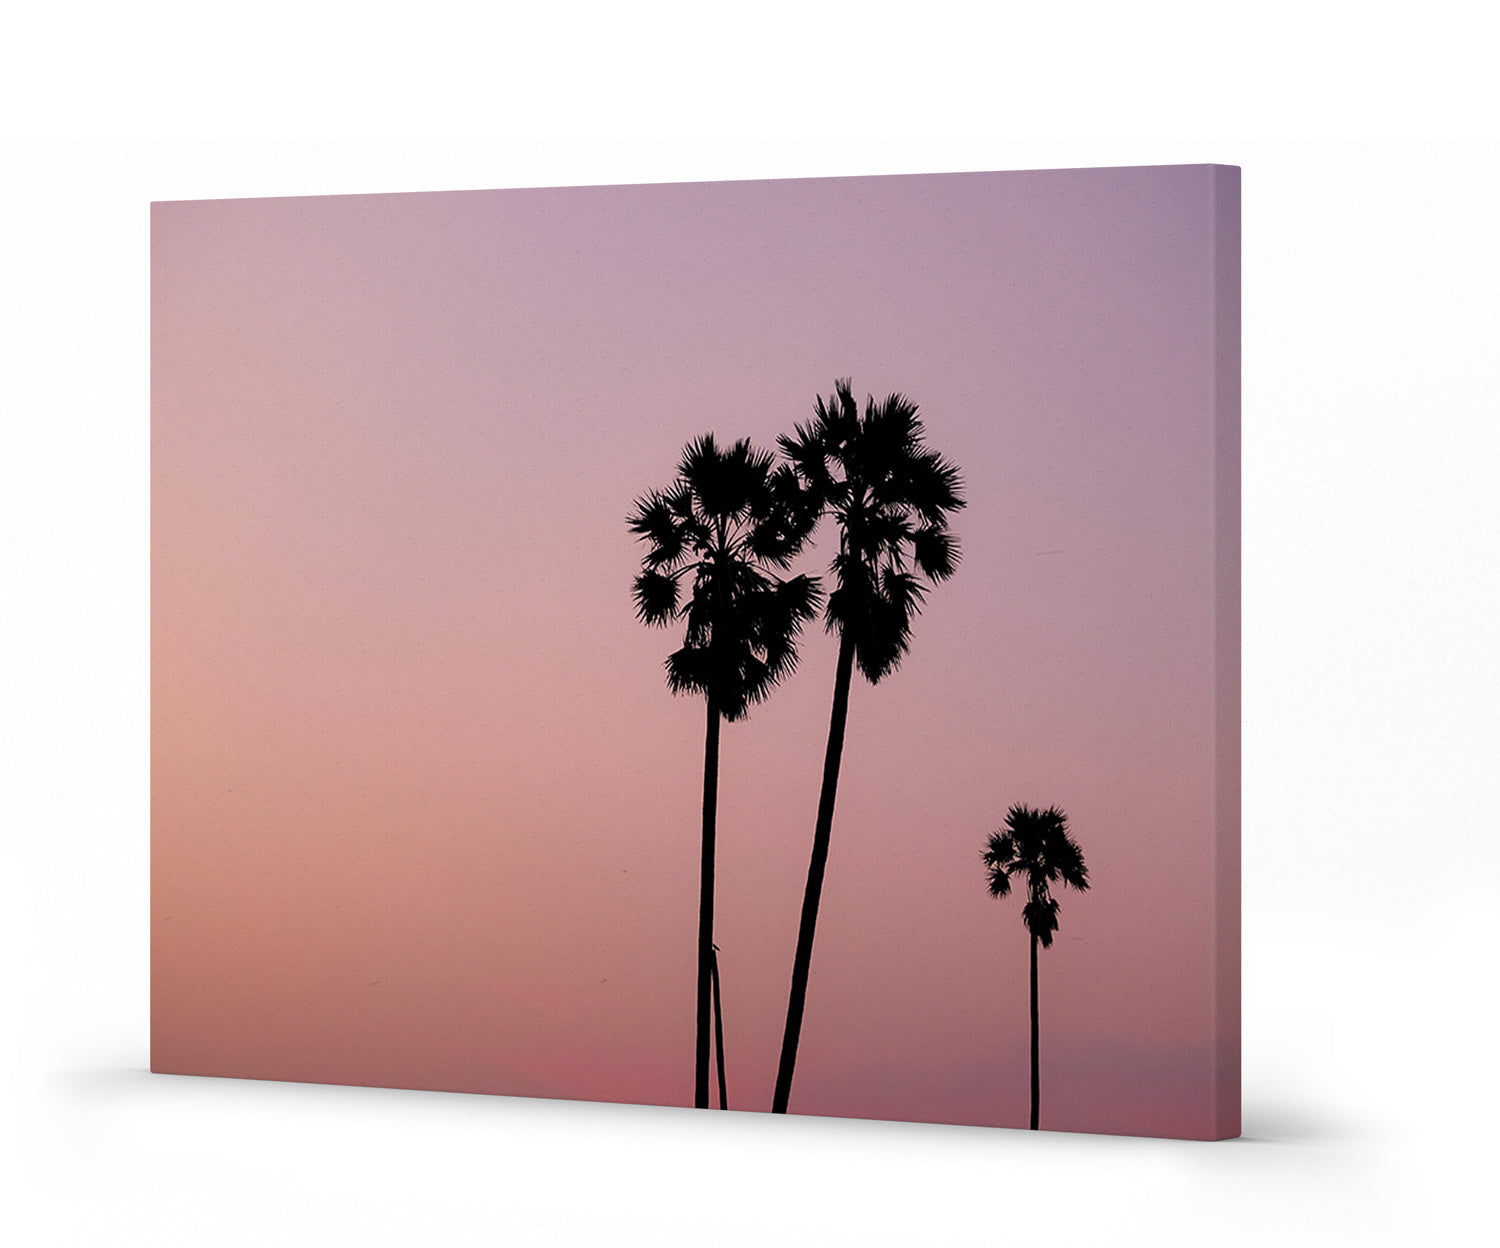 Summer sunsets with Palm Springs Vibes with dusty pink hues - this Palm Canvas Wall Print is it!